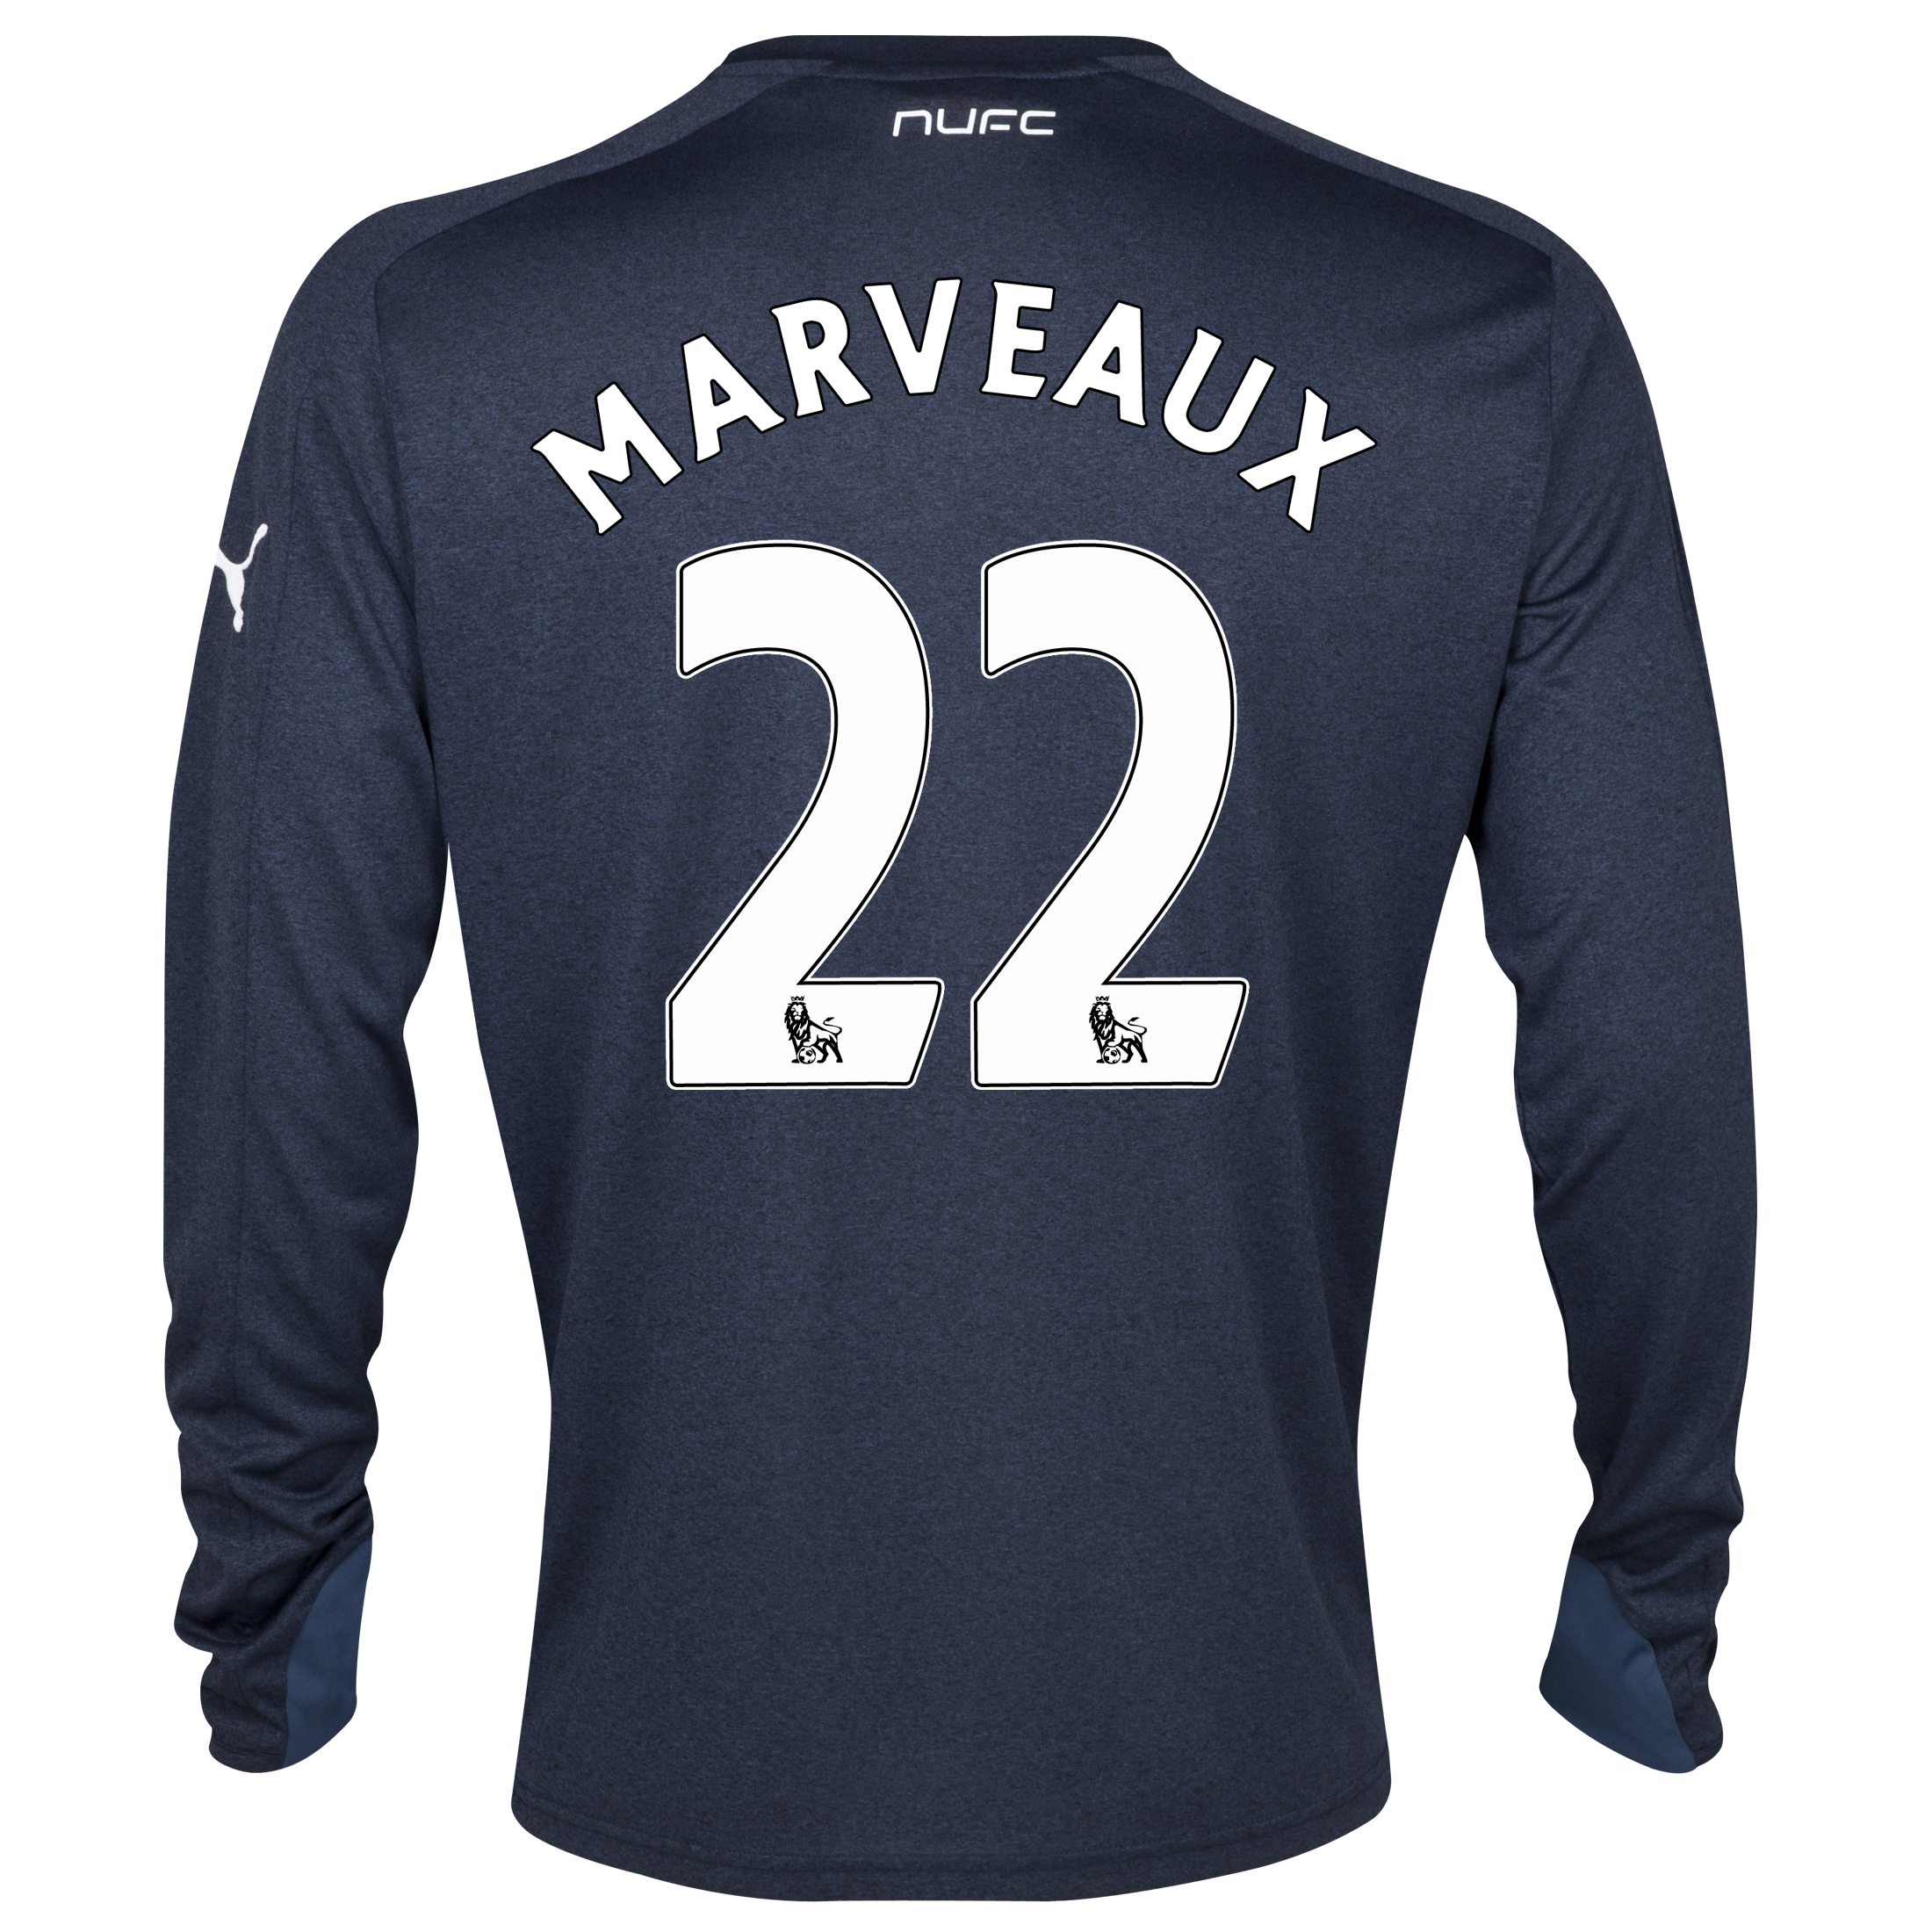 Newcastle United Away Shirt 2013/14- Long Sleeve with Marveaux 22 printing